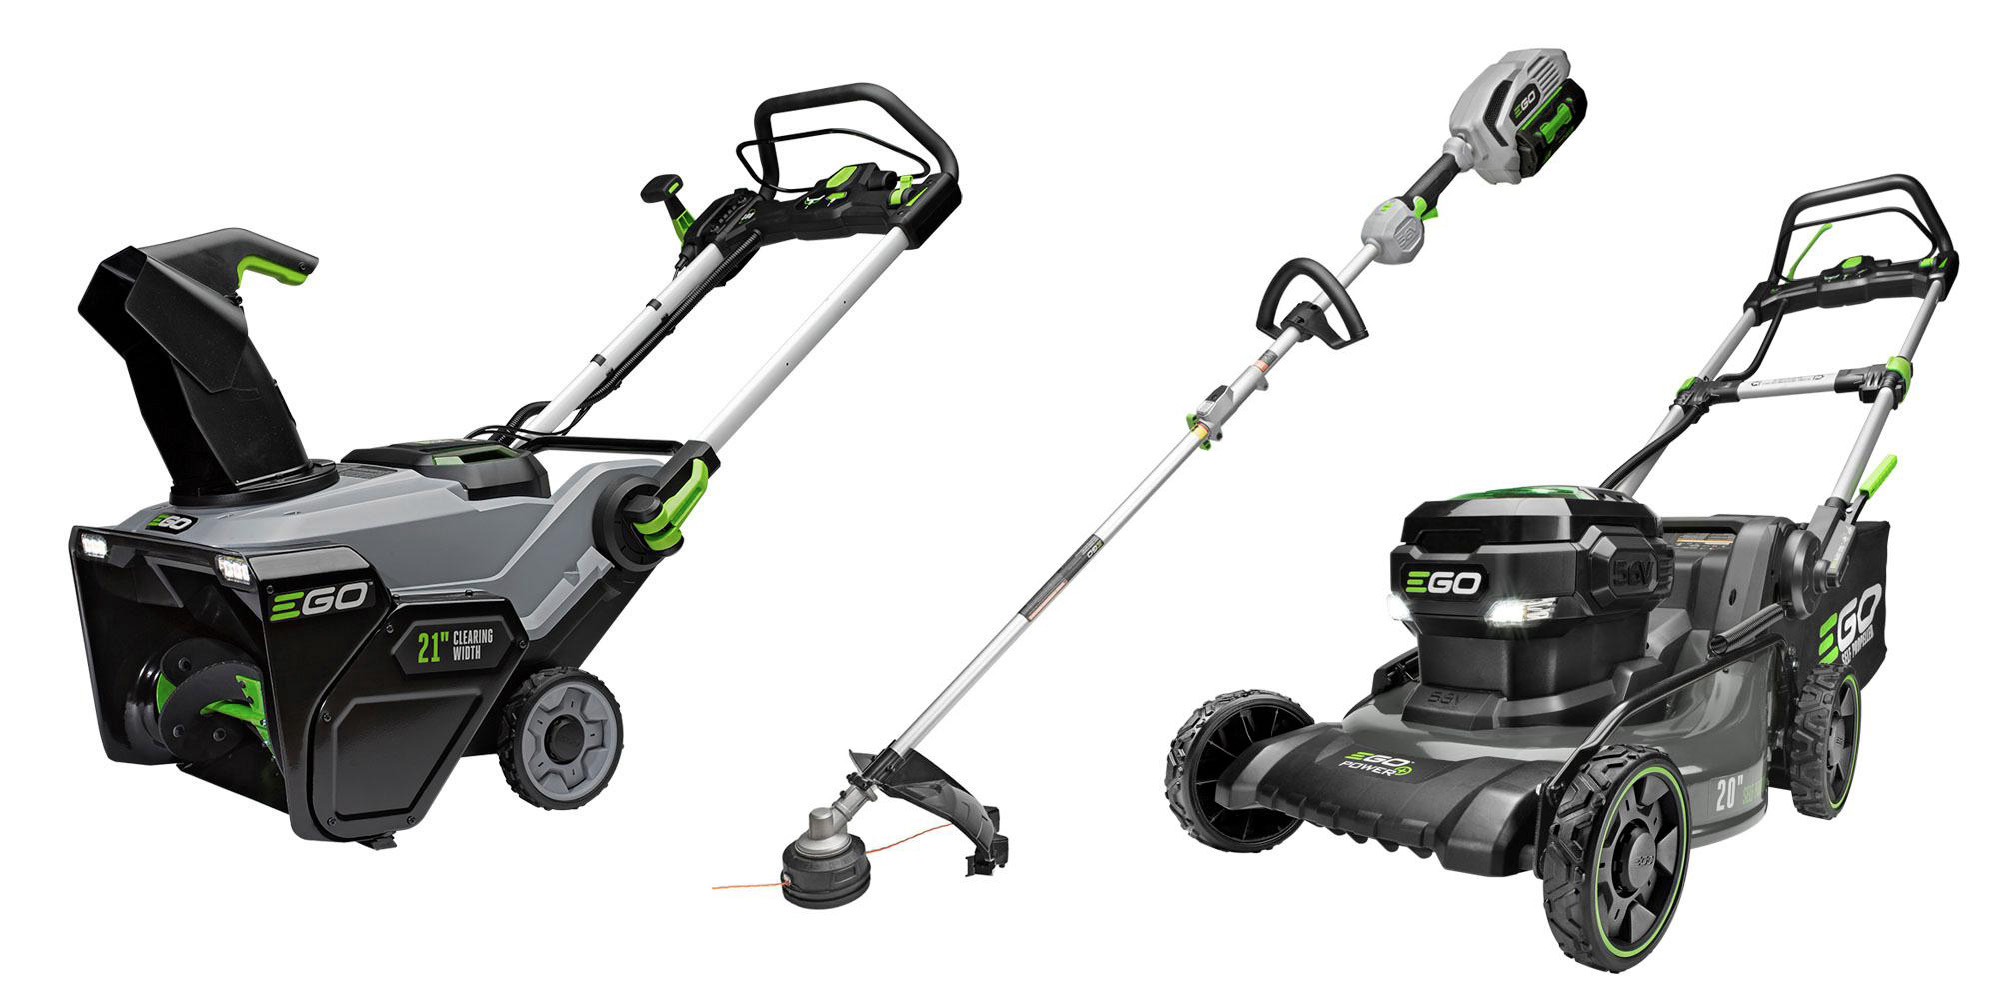 home depot 1 day ego karcher electric tool sale takes 25 off deals from 79 9to5toys. Black Bedroom Furniture Sets. Home Design Ideas